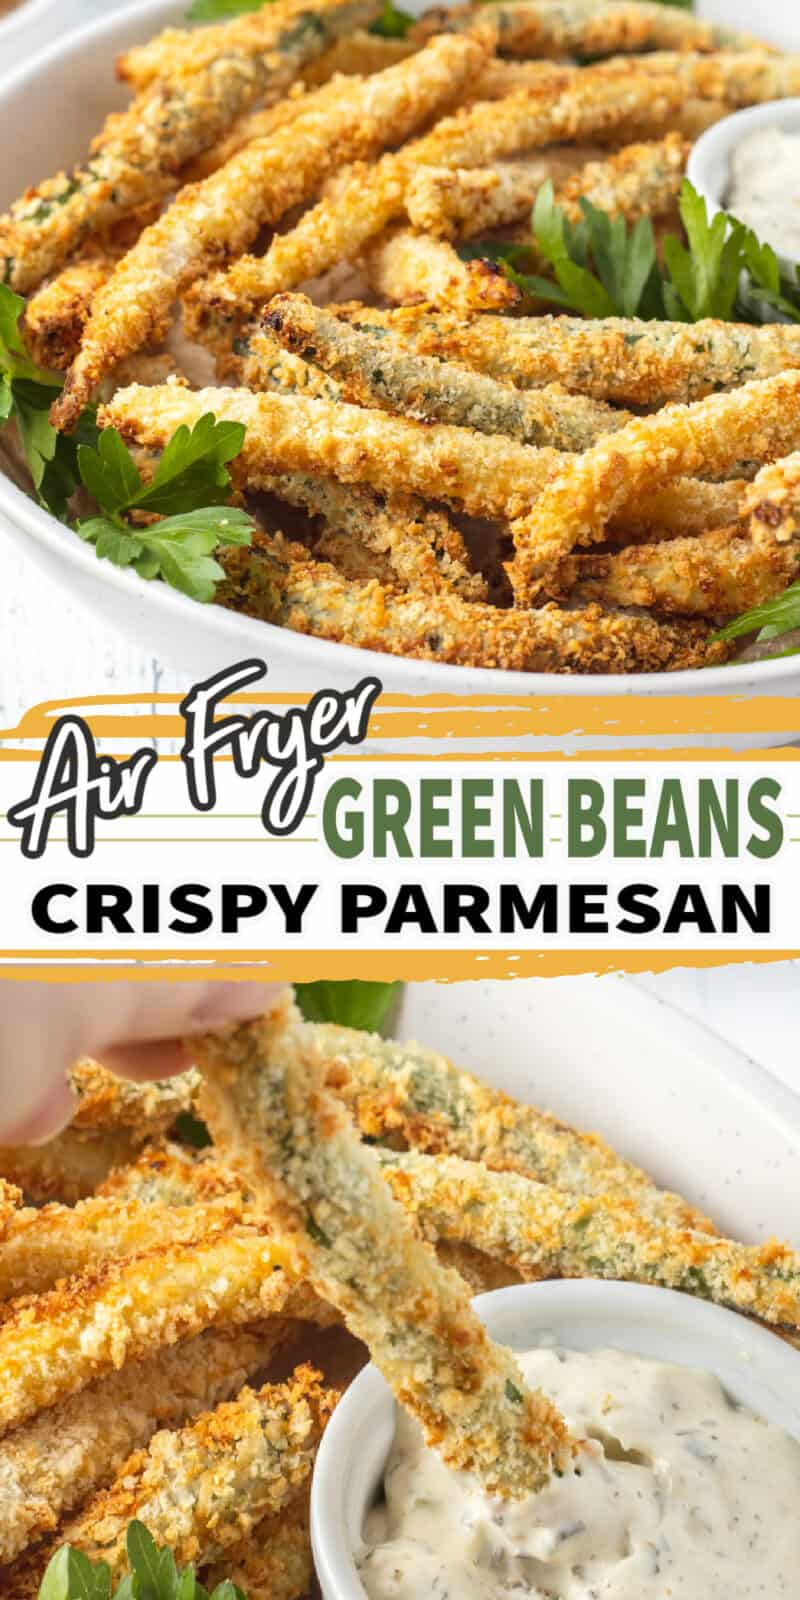 air fryer green beans in a white bowl with text